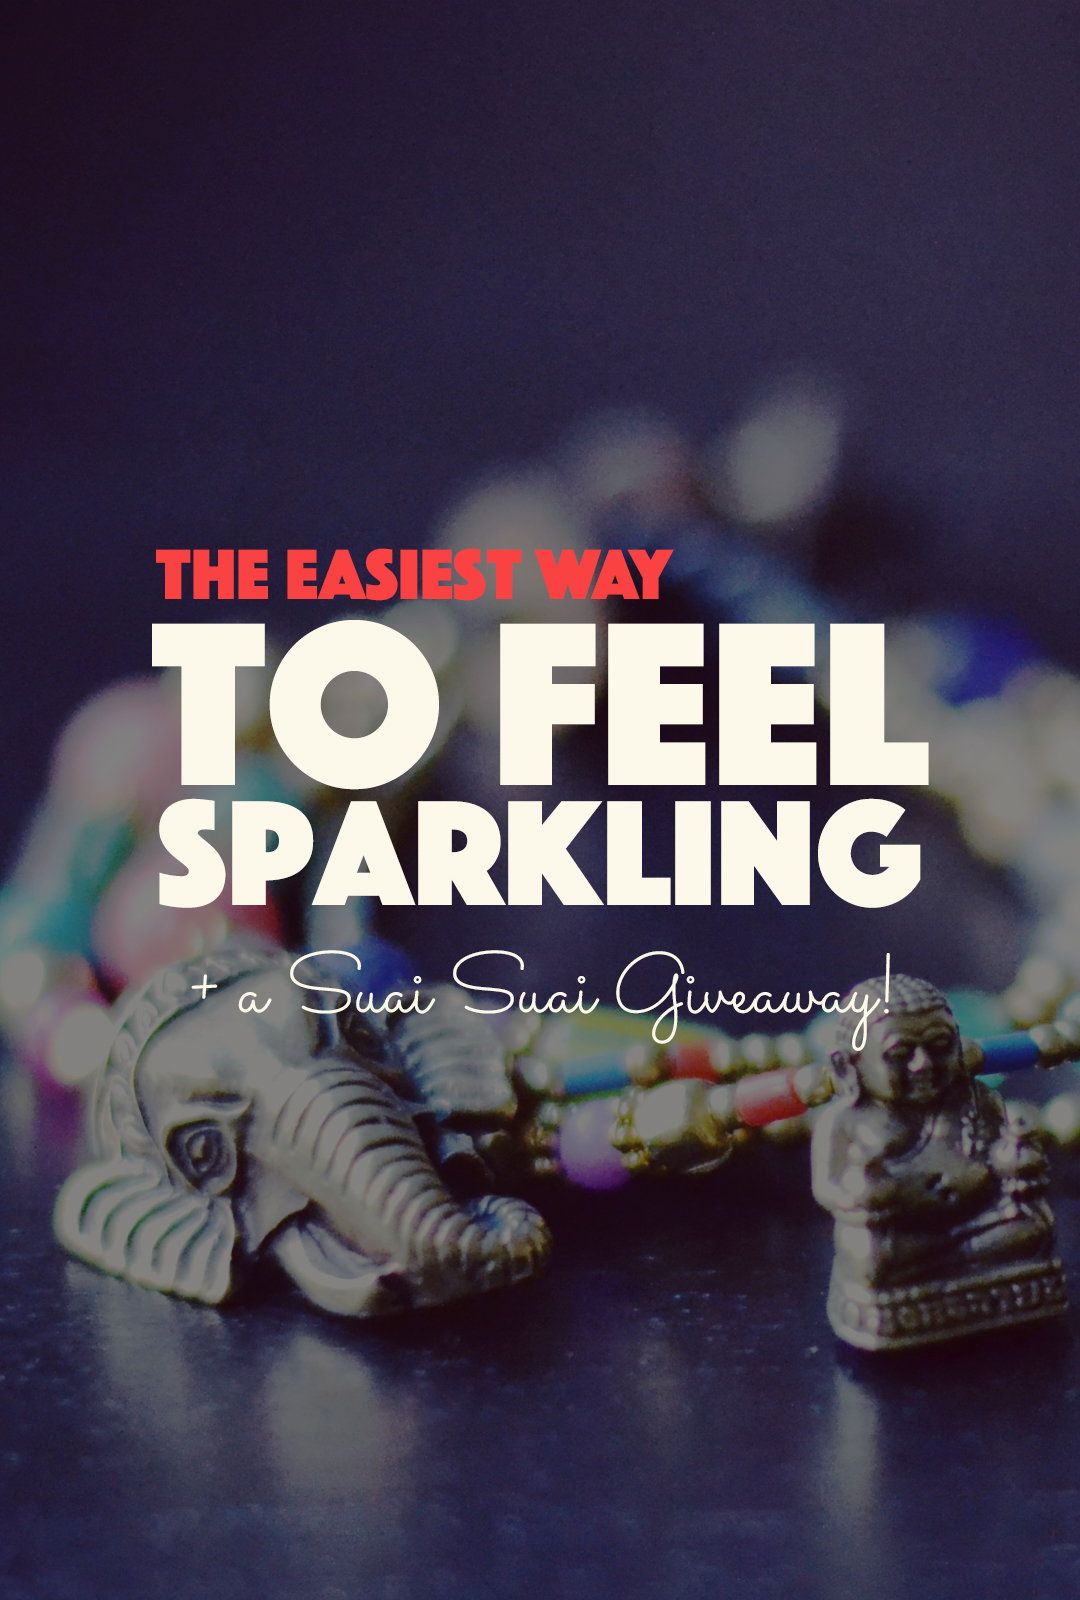 The Easiest Way to Feel Sparkling + a Suai Suai Giveaway